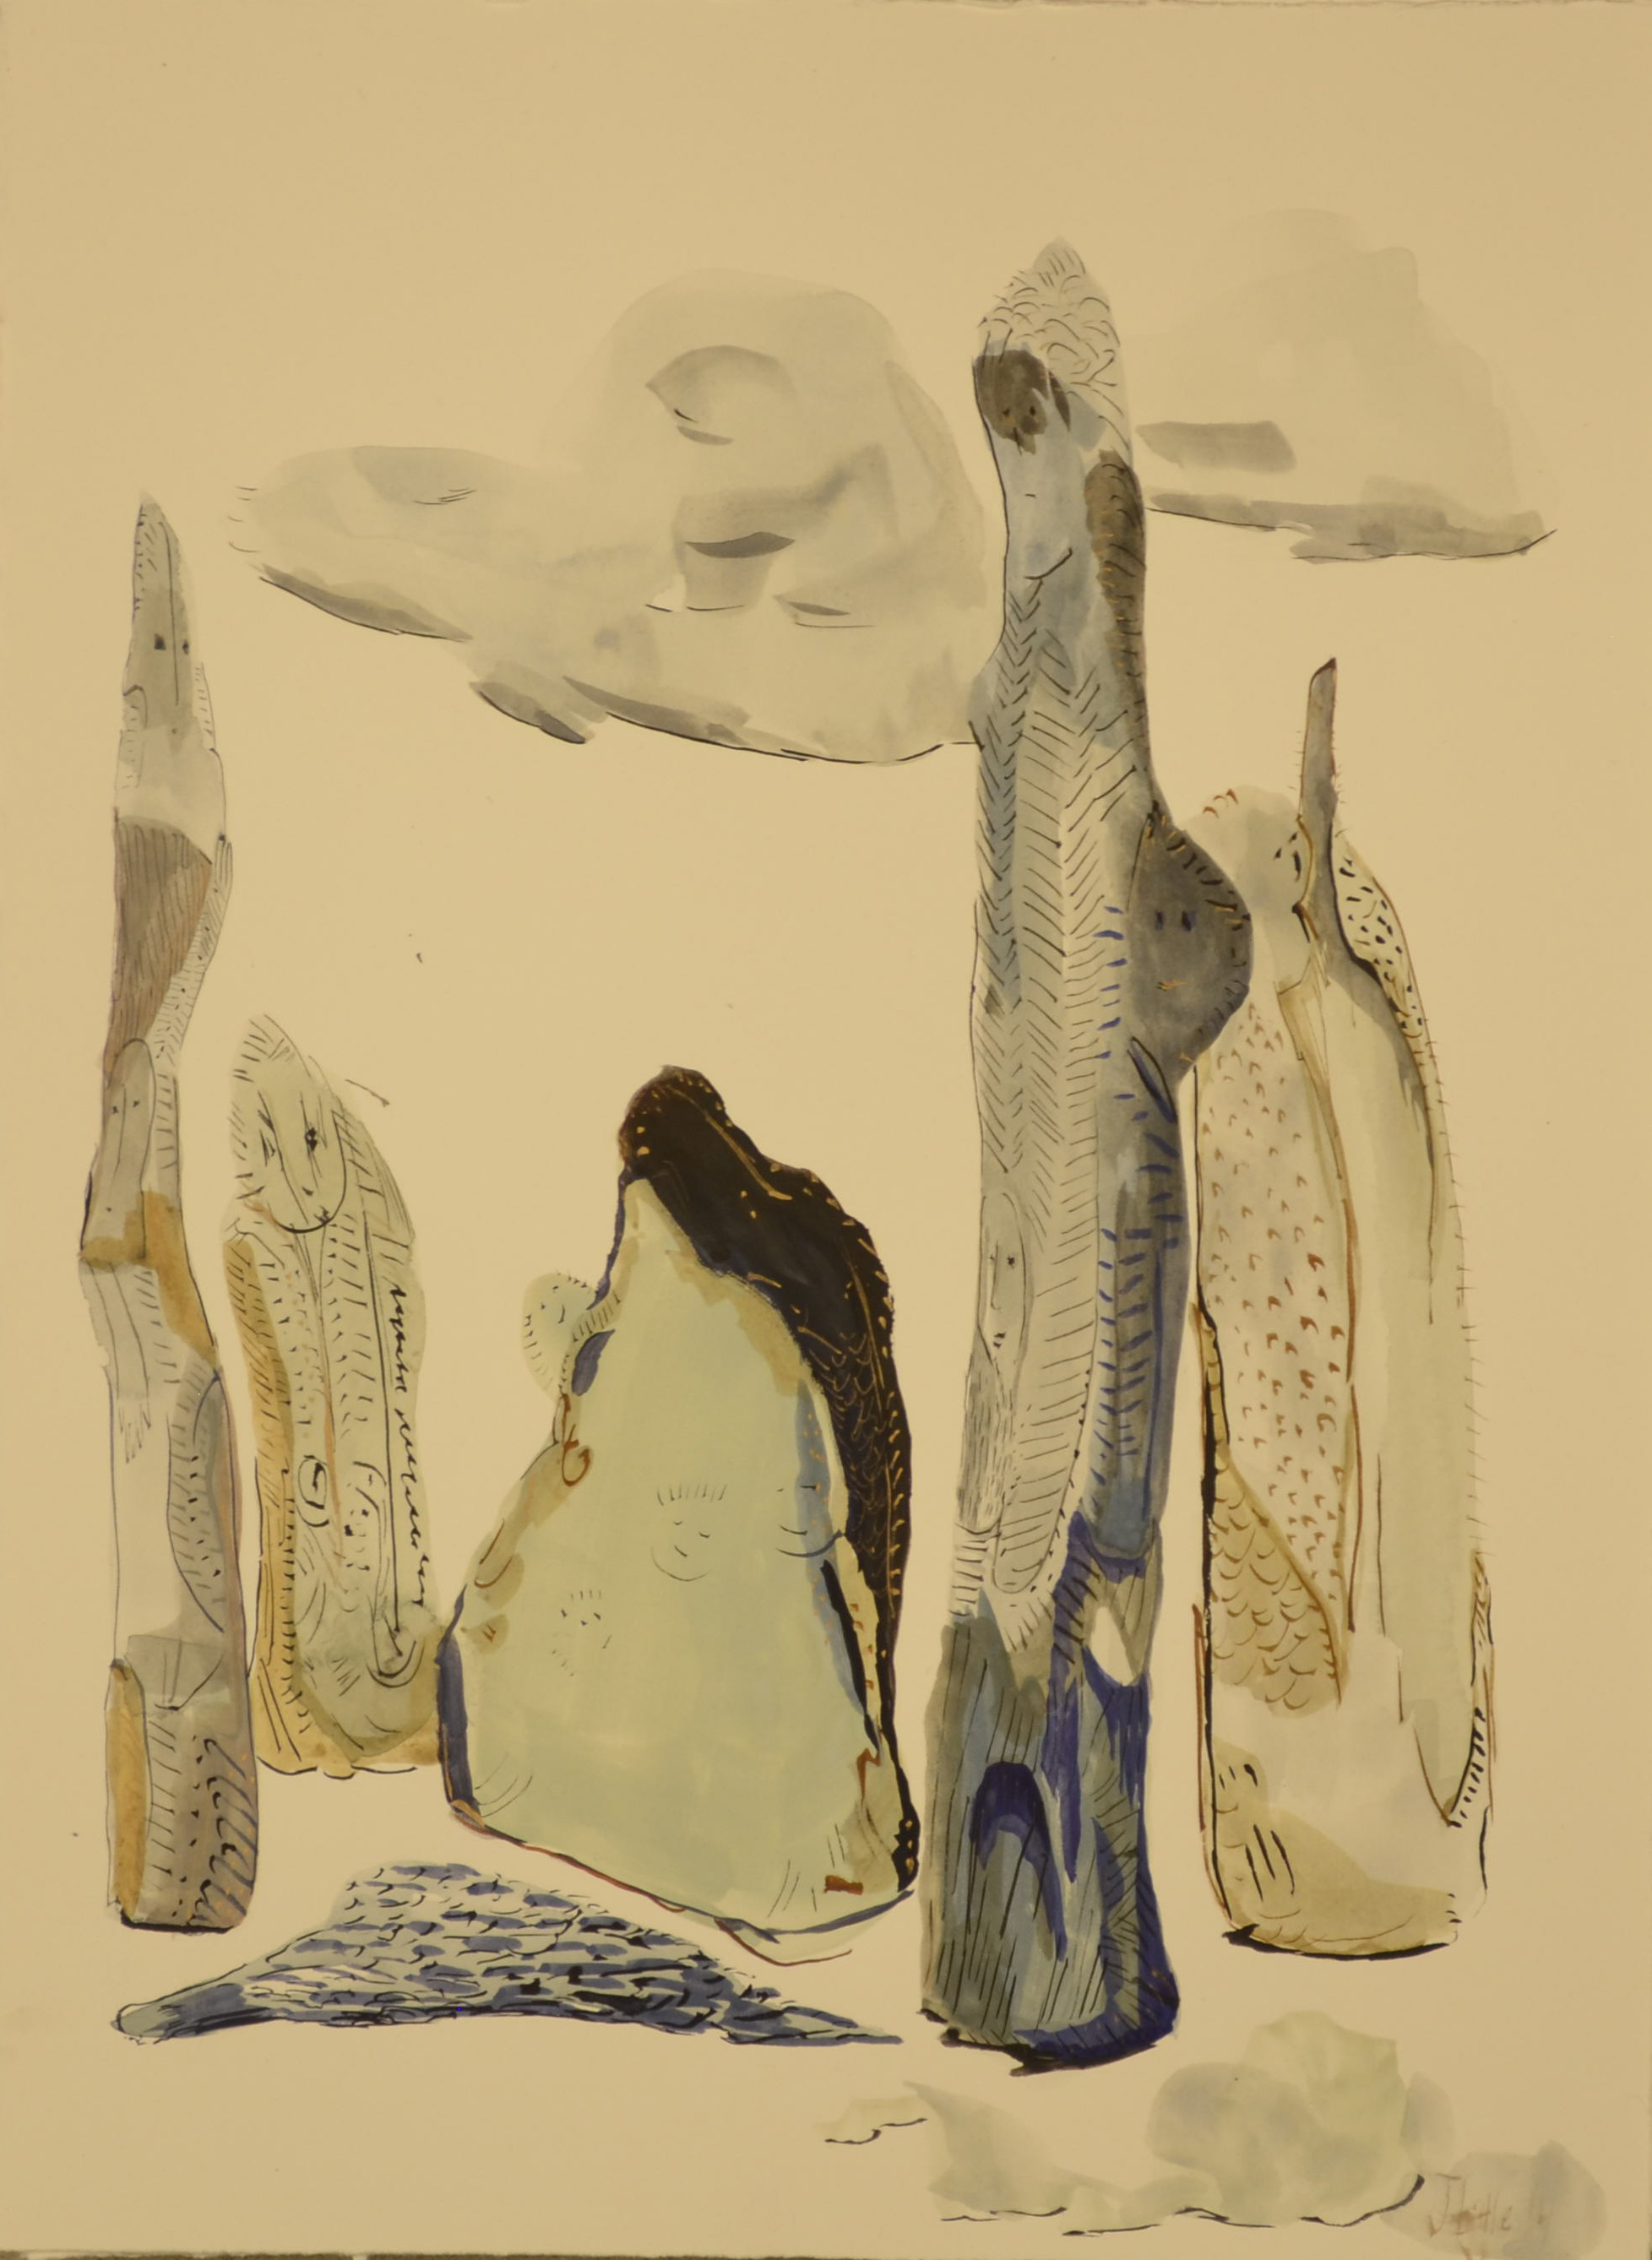 Blue Objects, 11 x 15 inches, watercolor on paper,2014.